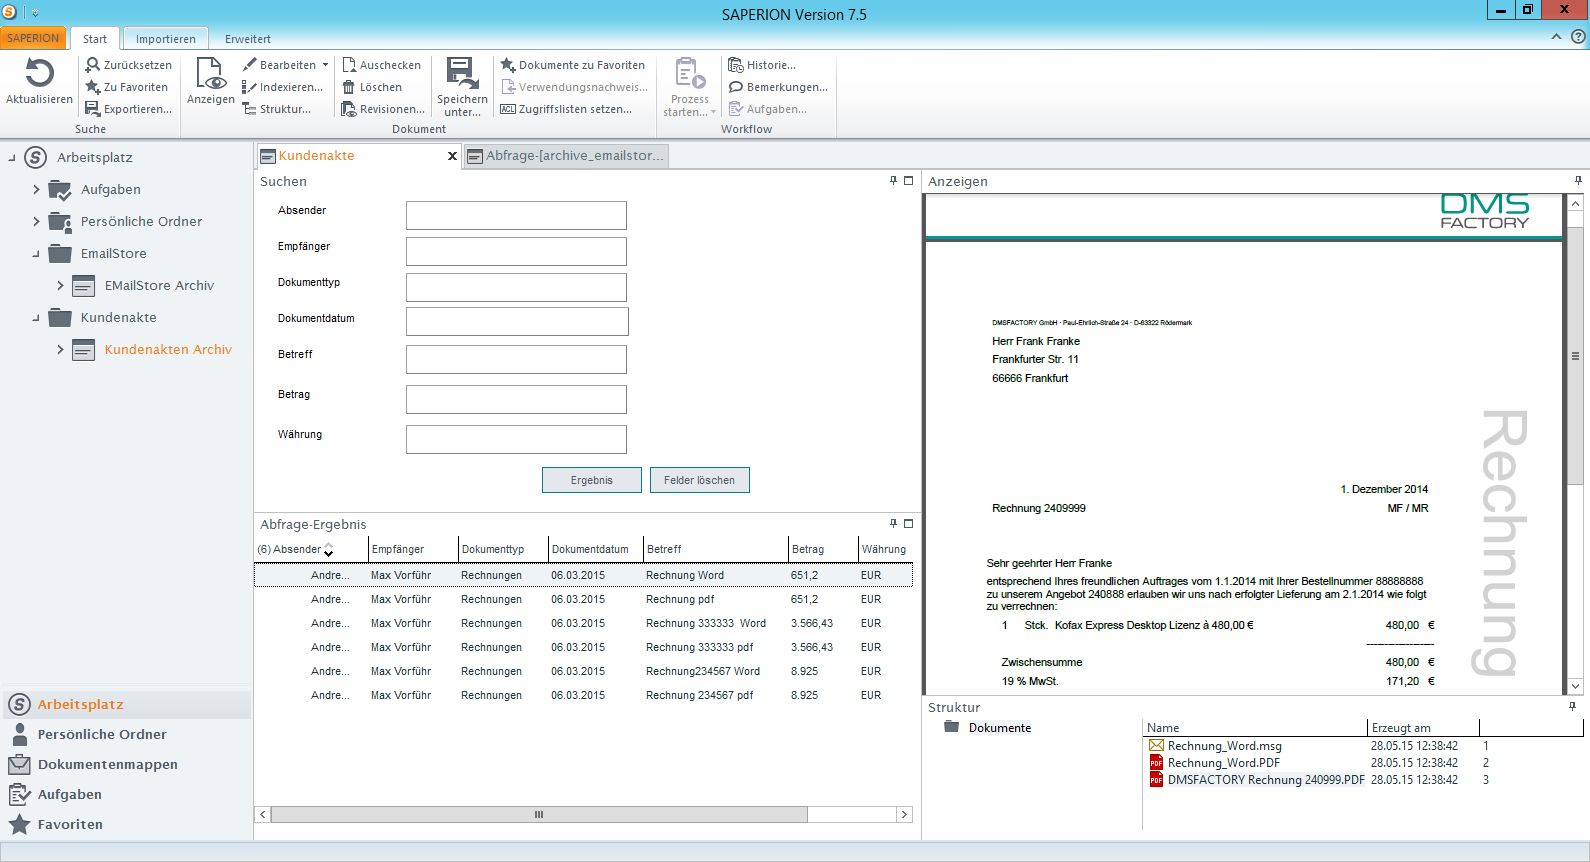 DMSFACTORY EmailStore Search Search with the Saperion Client All